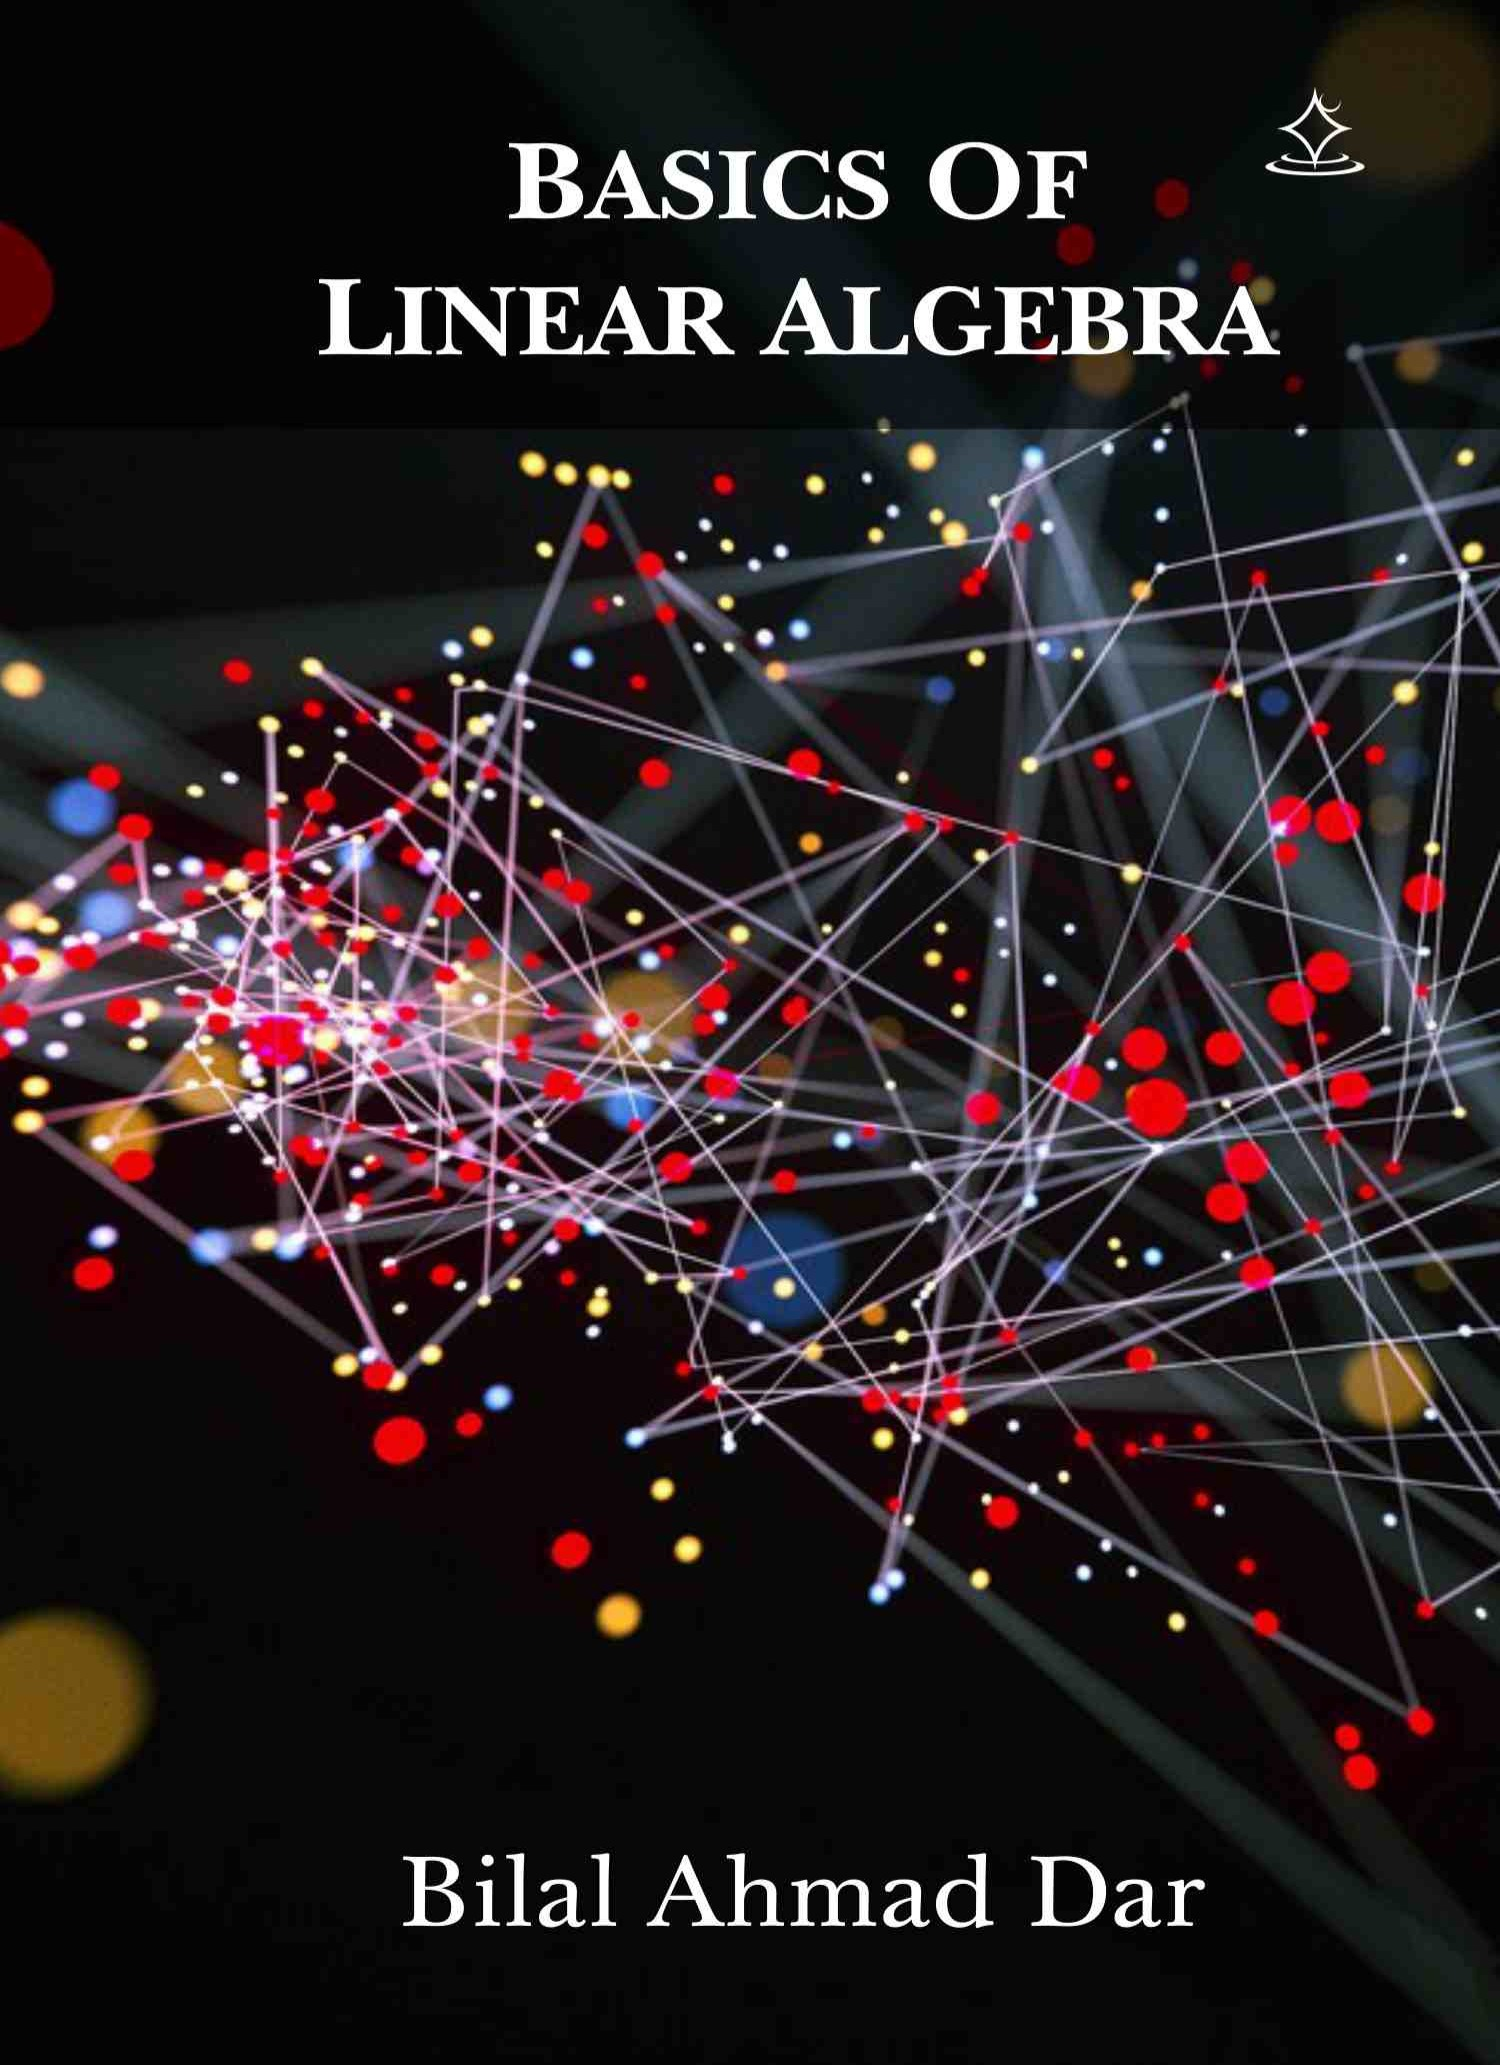 BASICS OF LINEAR ALGEBRA